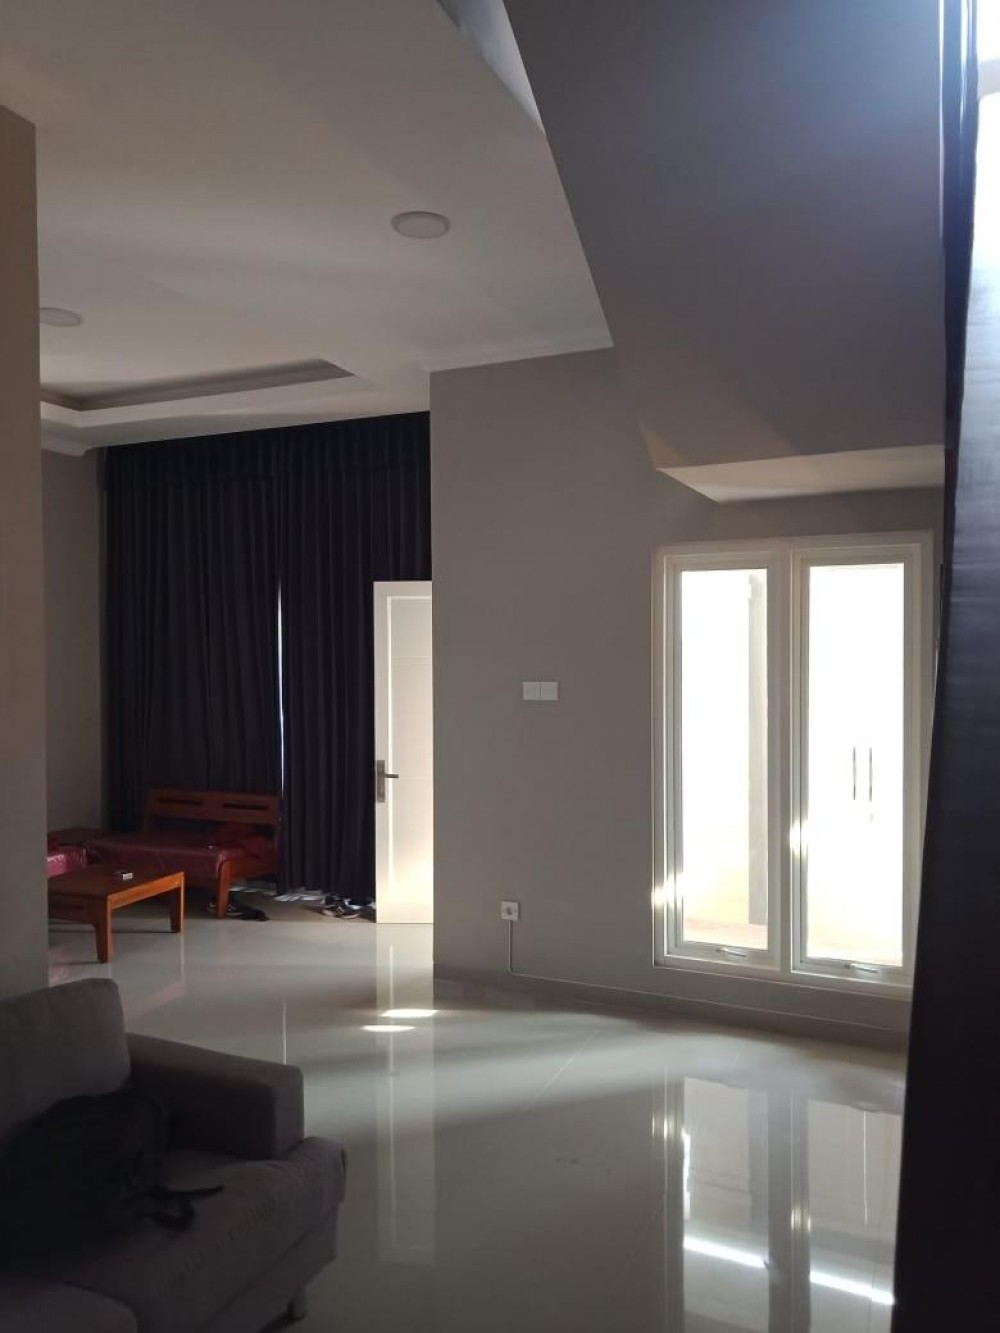 Reduced Price Brand New 4 Bedrooms Pool Villa FOR SALE